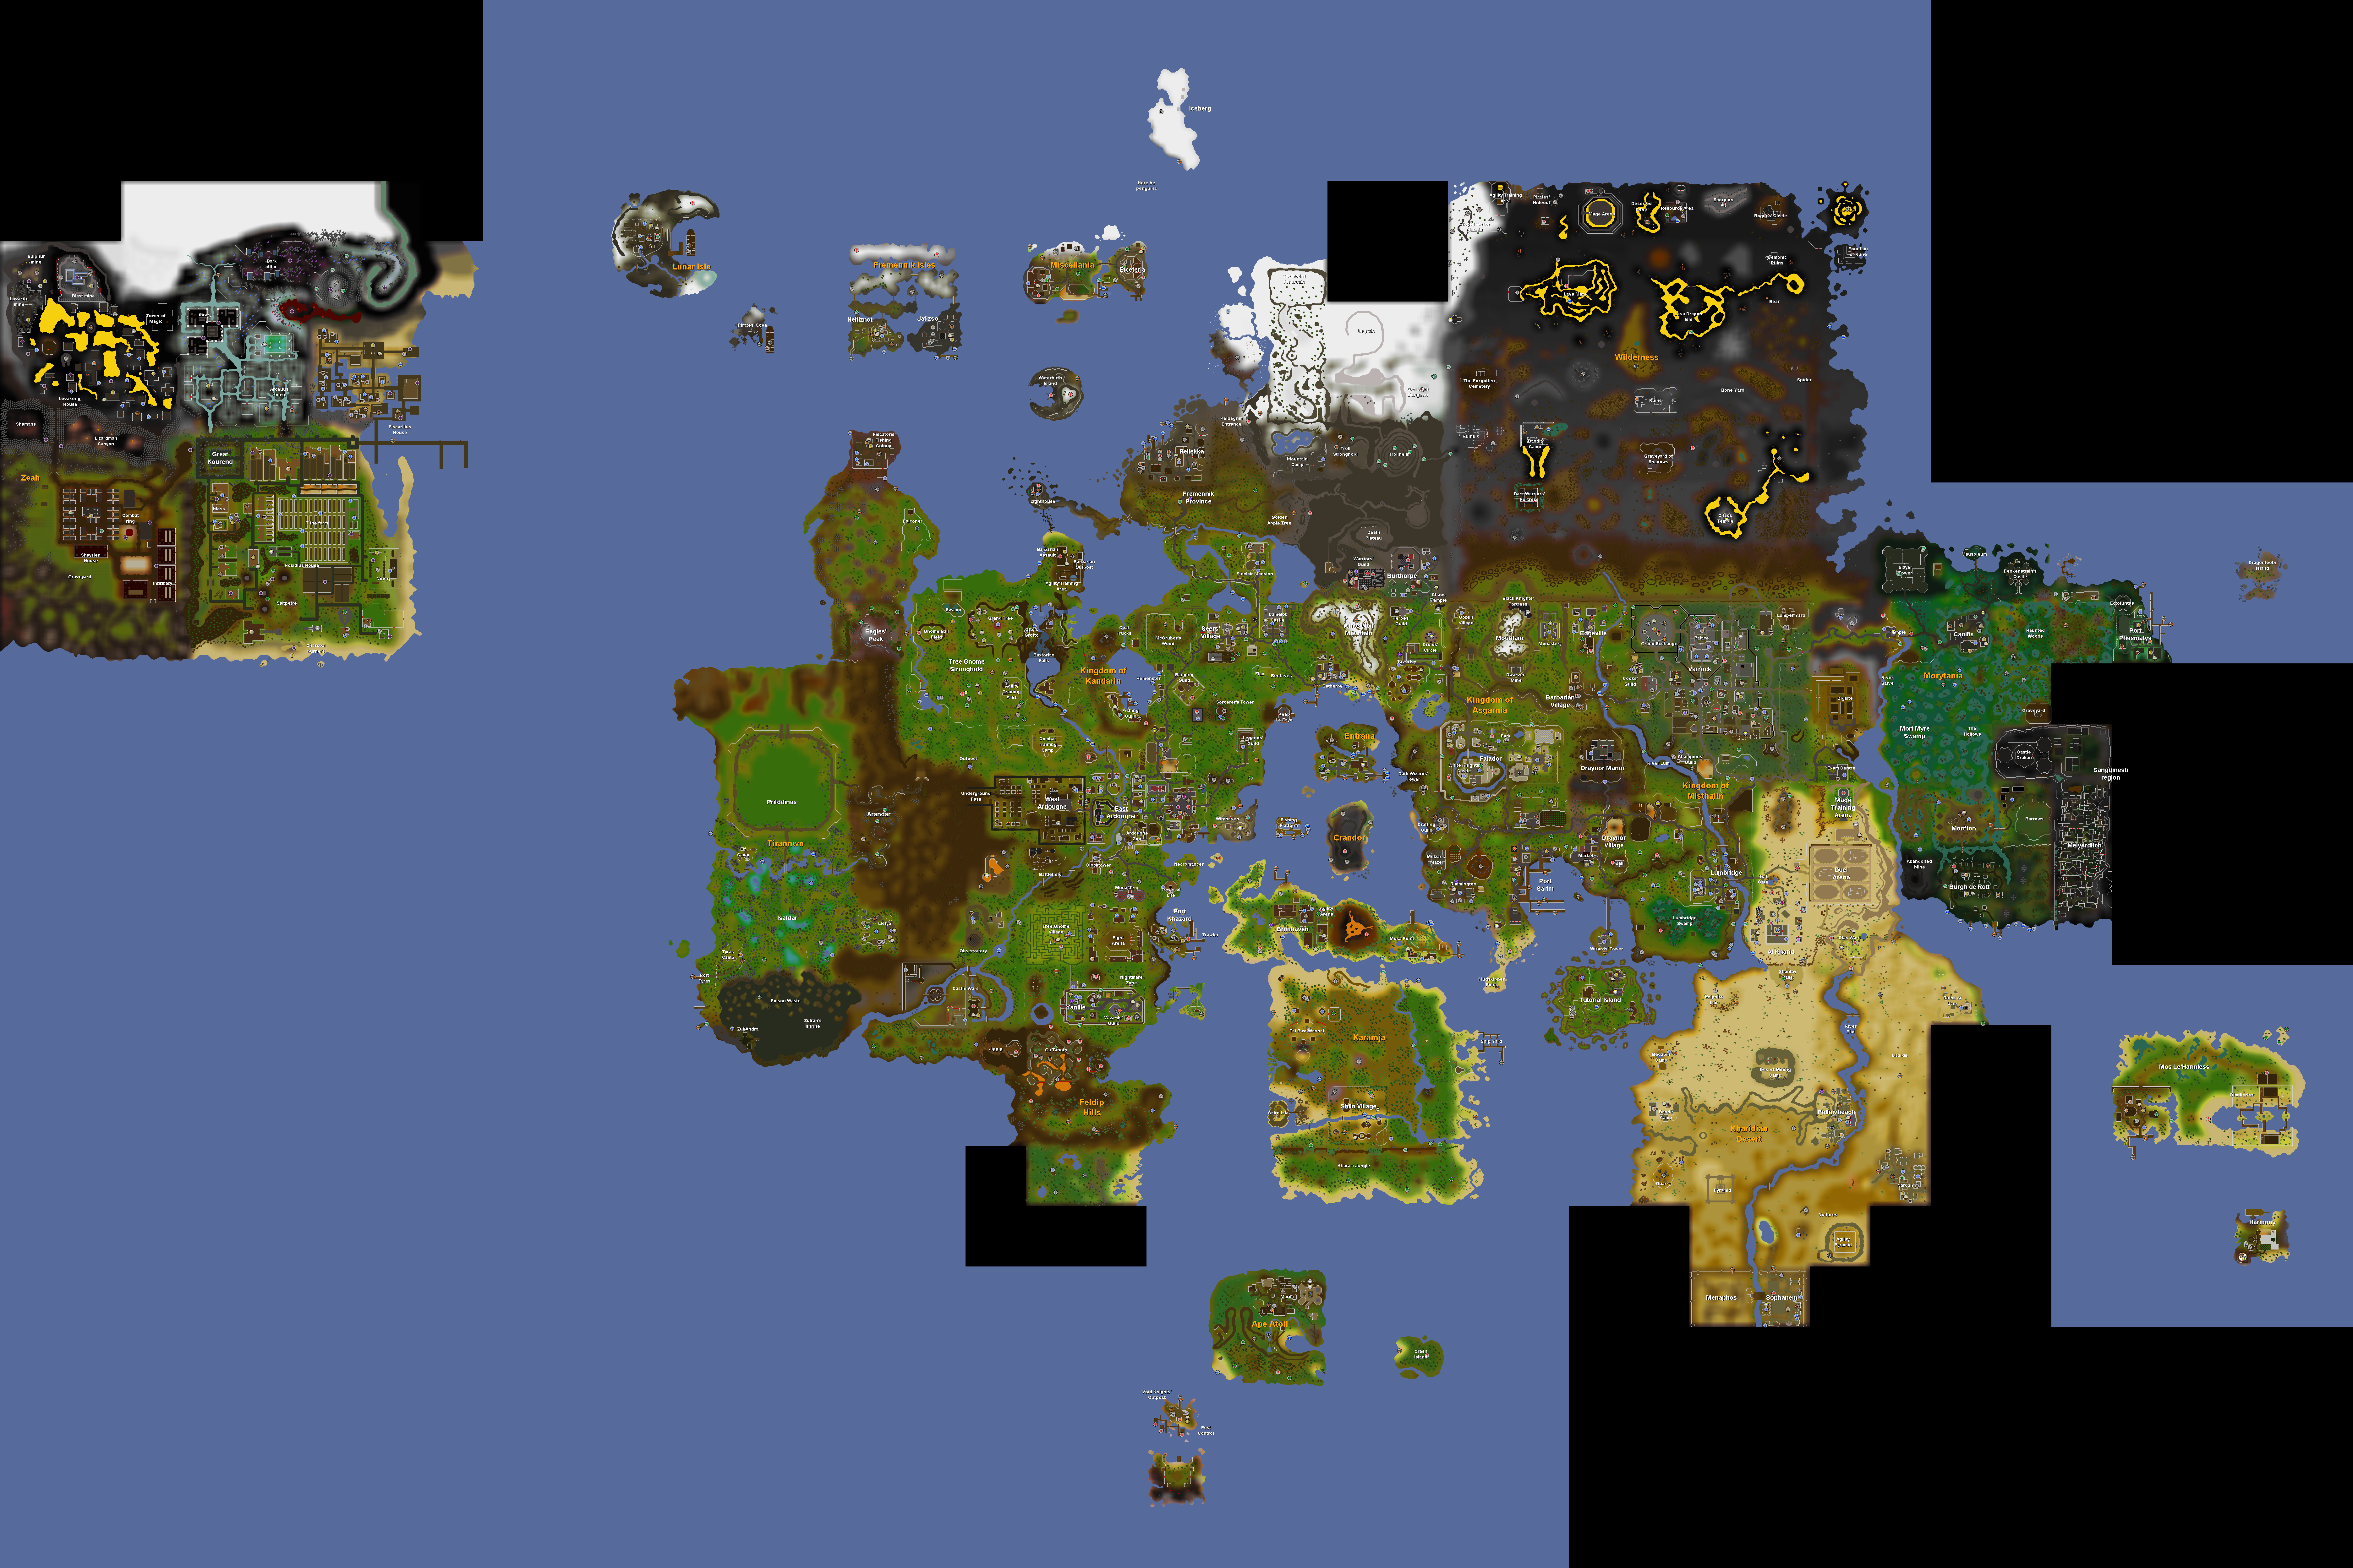 Image old school runescape world mapg old school runescape 1538 march 3 2016 gumiabroncs Images